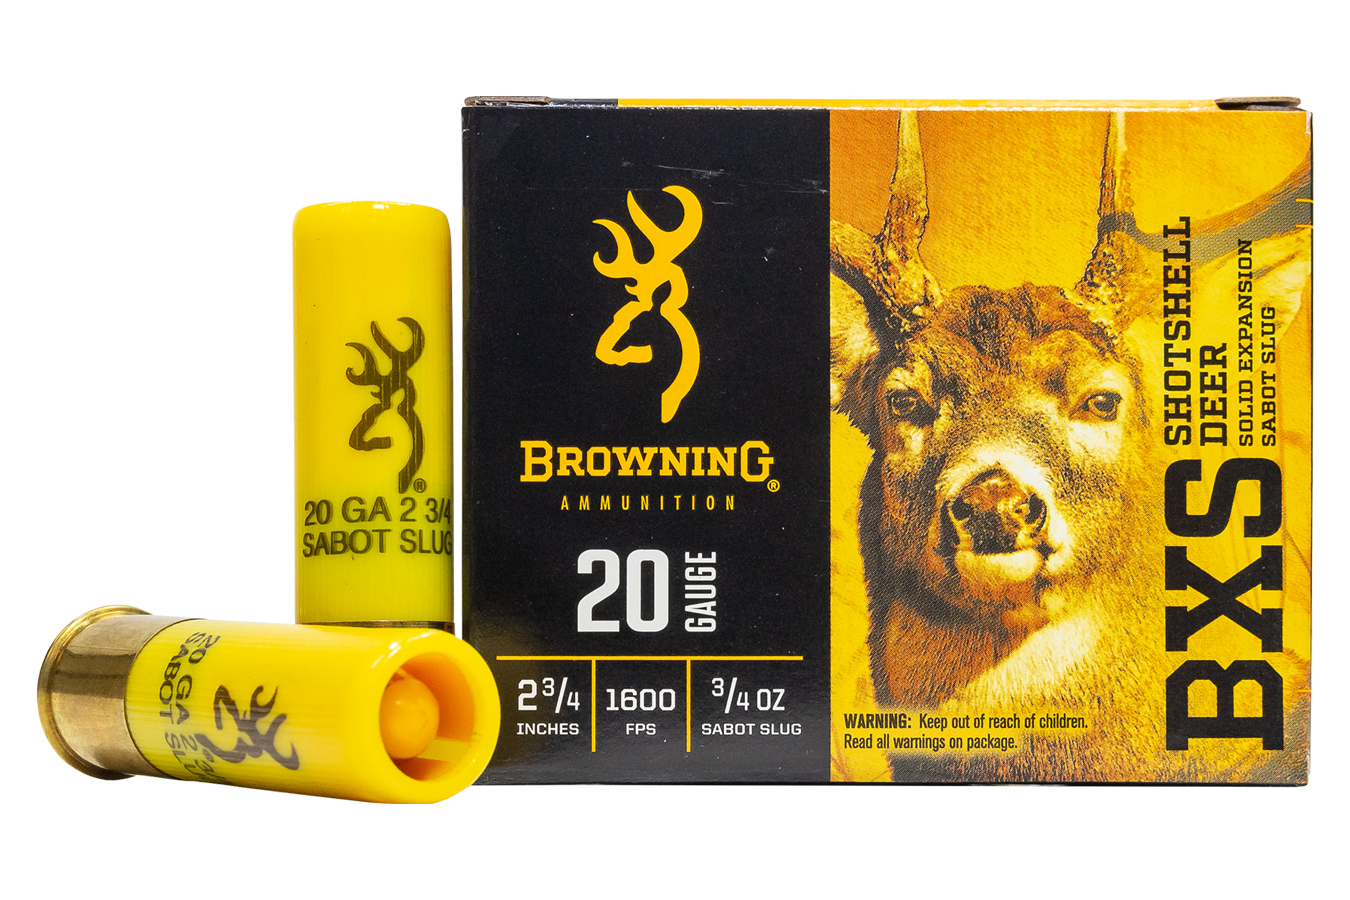 BROWNING AMMUNITION 20 GA 2-3/4 IN 3/4 OZ 325 GR BXS SABOT SLUG